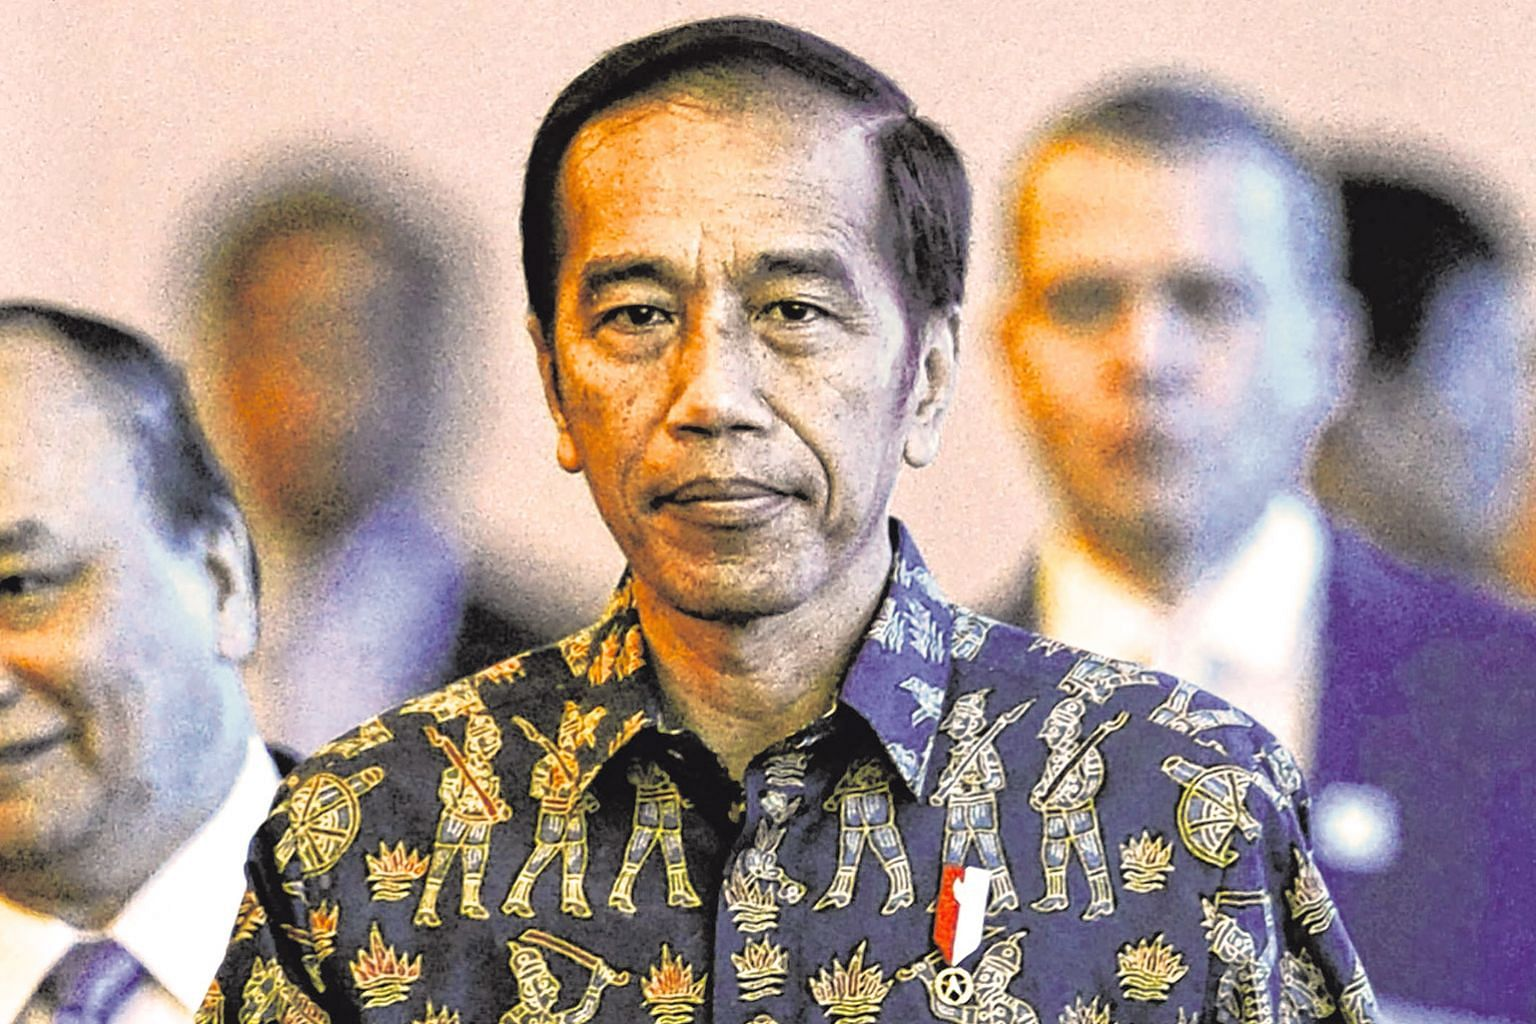 Indonesia's President Joko Widodo will be seeking a new mandate for a second term next April.